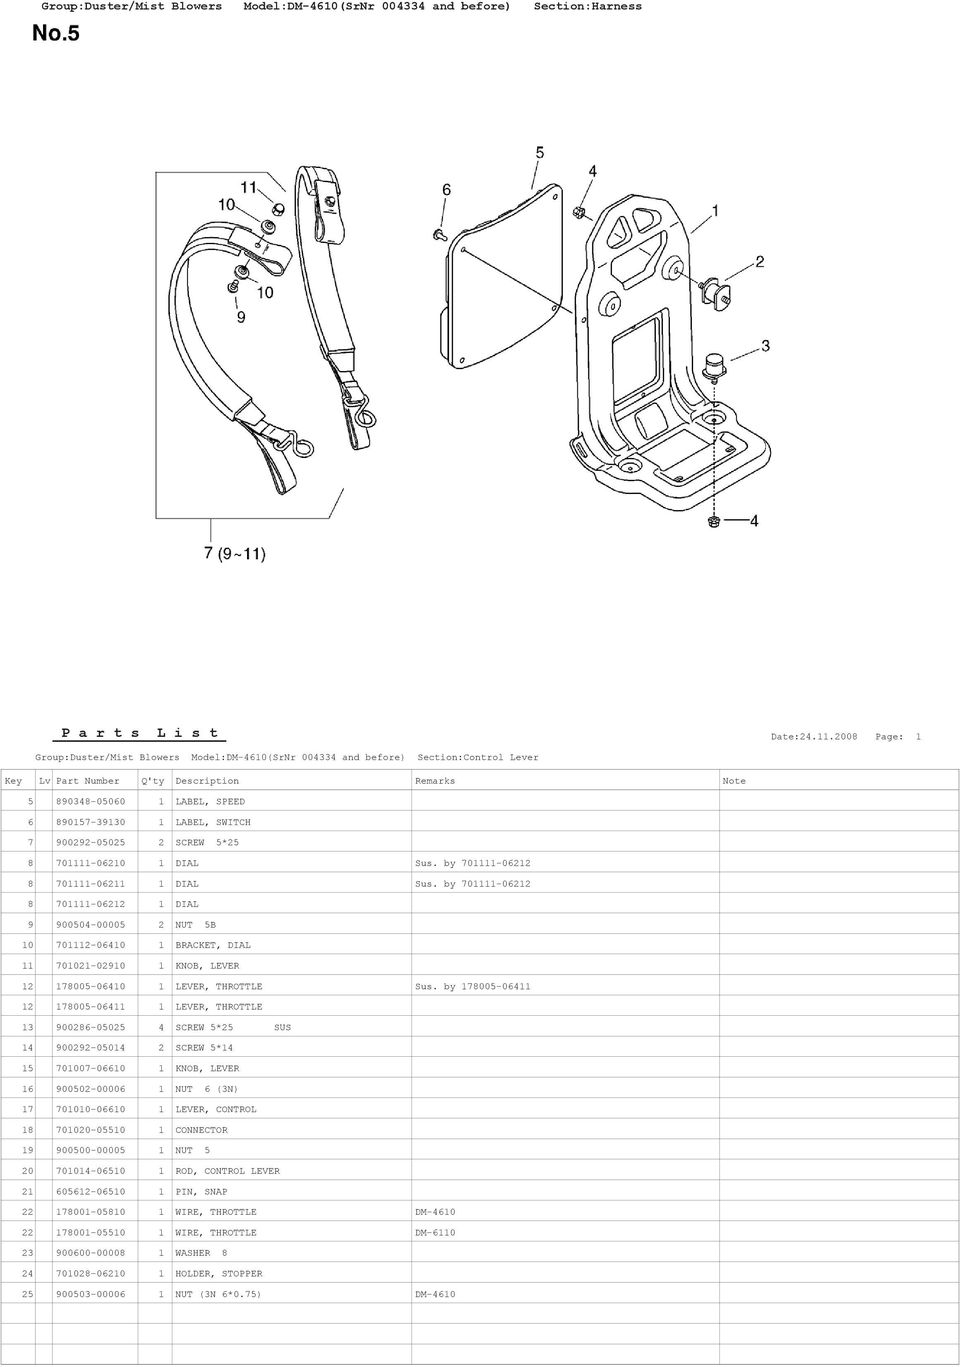 by 701111-06212 8 701111-06212 1 DIAL 9 900504-00005 2 NUT 5B 10 701112-06410 1 BRACKET, DIAL 11 701021-02910 1 KNOB, LEVER 12 178005-06410 1 LEVER, THROTTLE Sus.